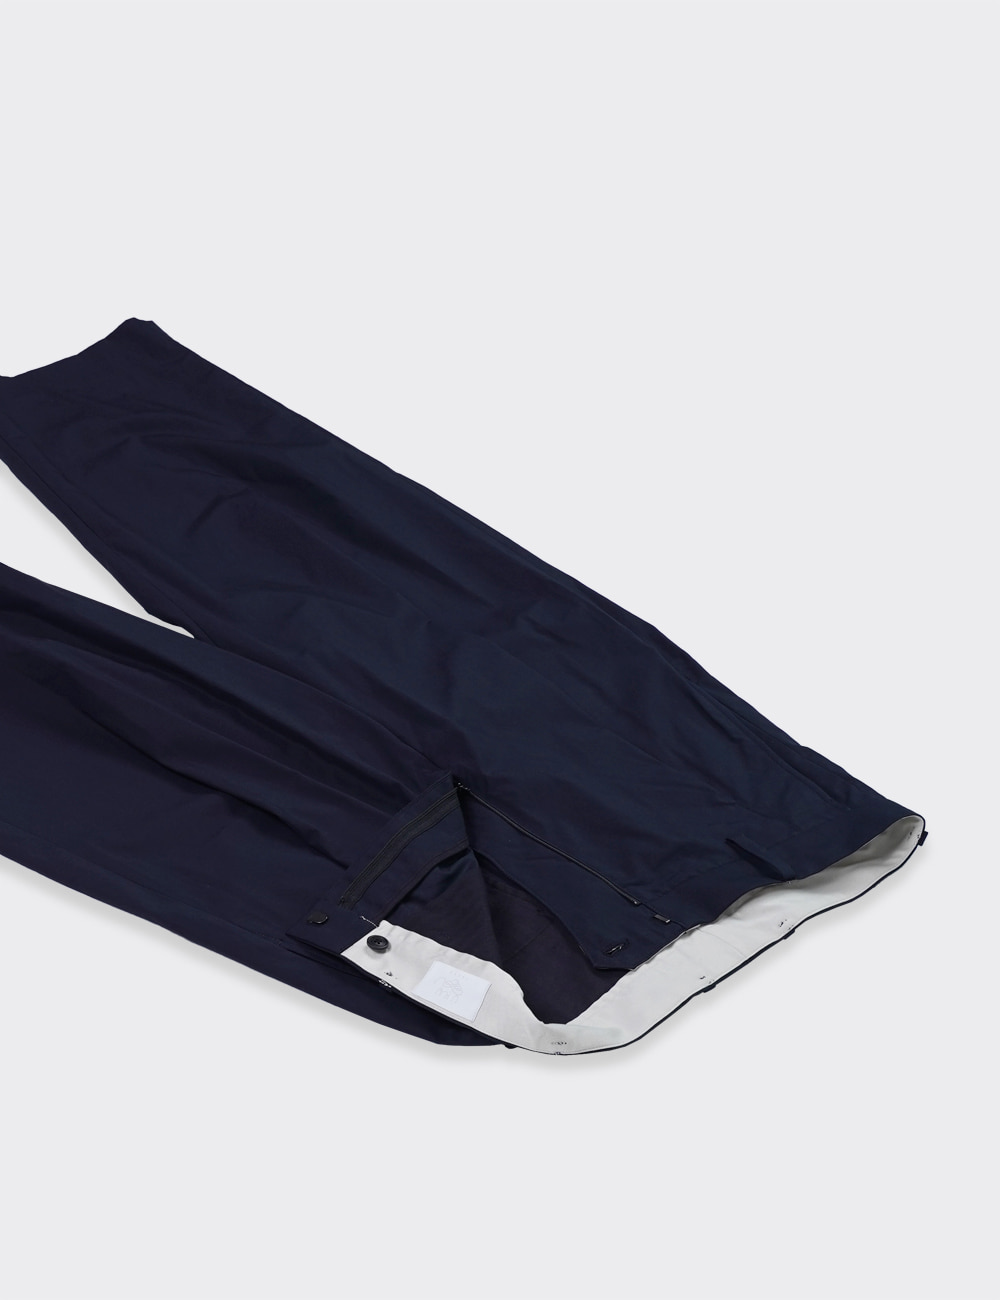 URU : 1TUCK PANTS / TYPE B (NAVY)